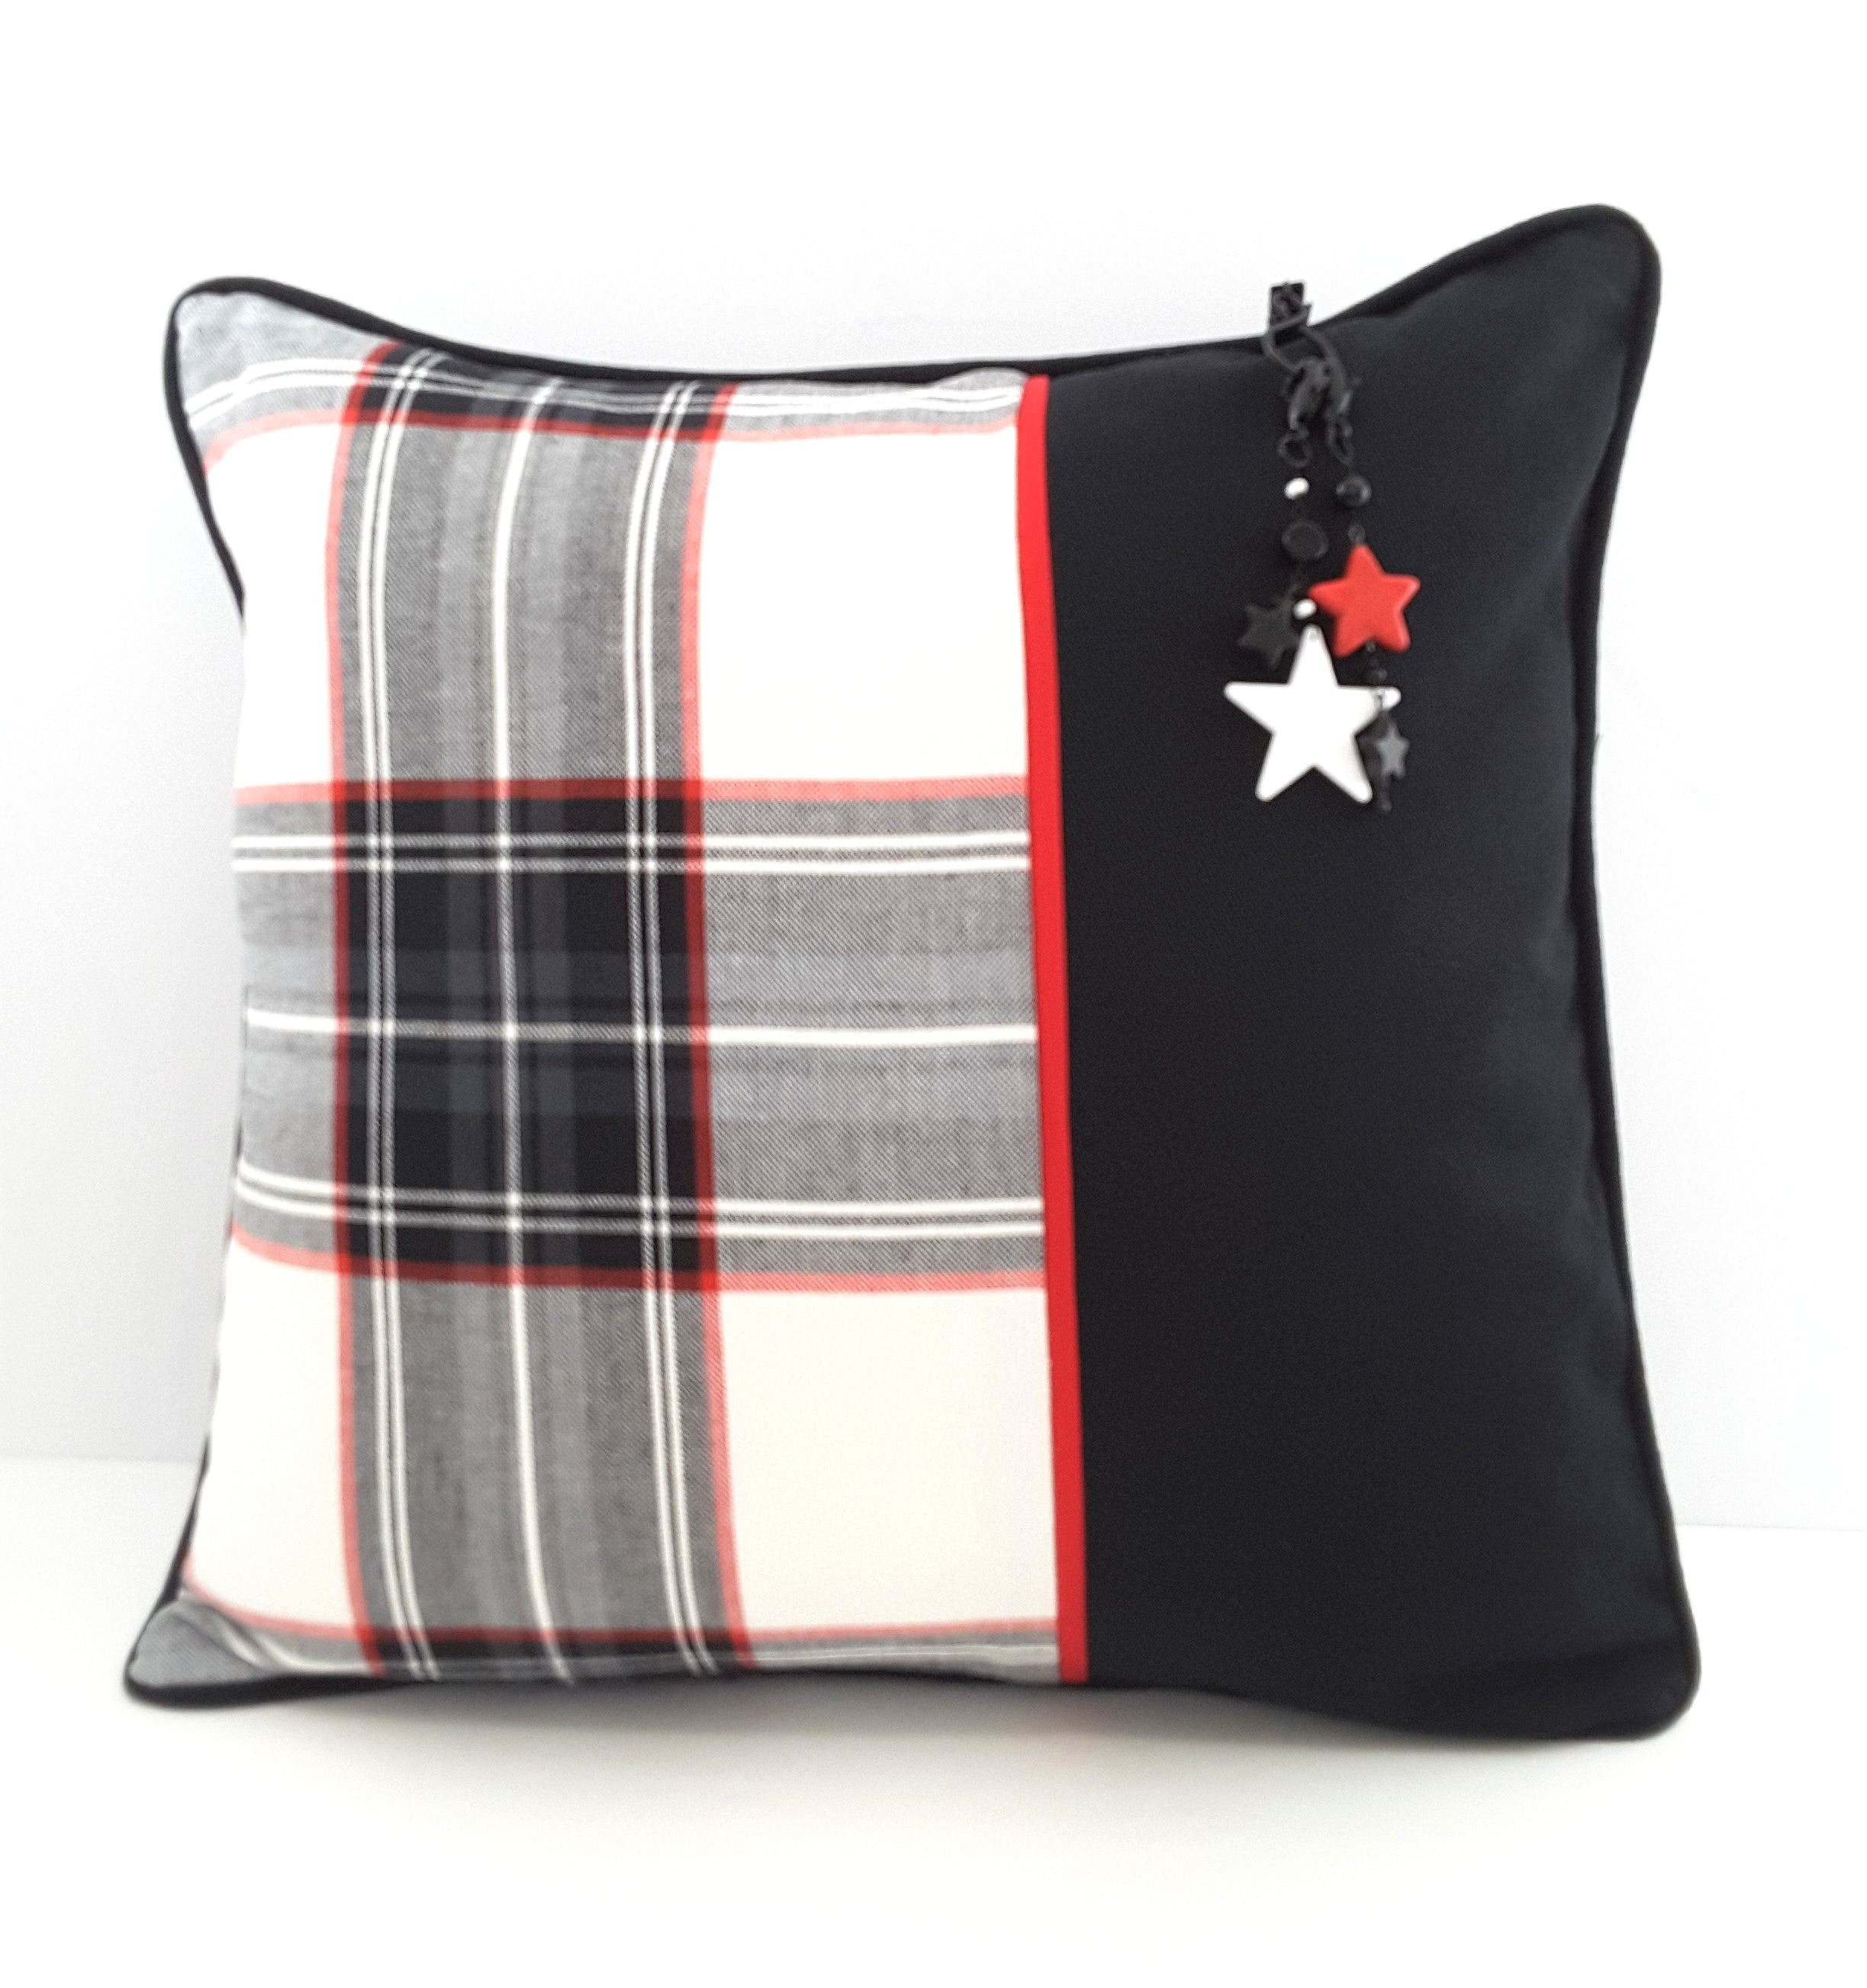 Stylish Black/White/Red Plaid Denim Pillow Cover with Charm